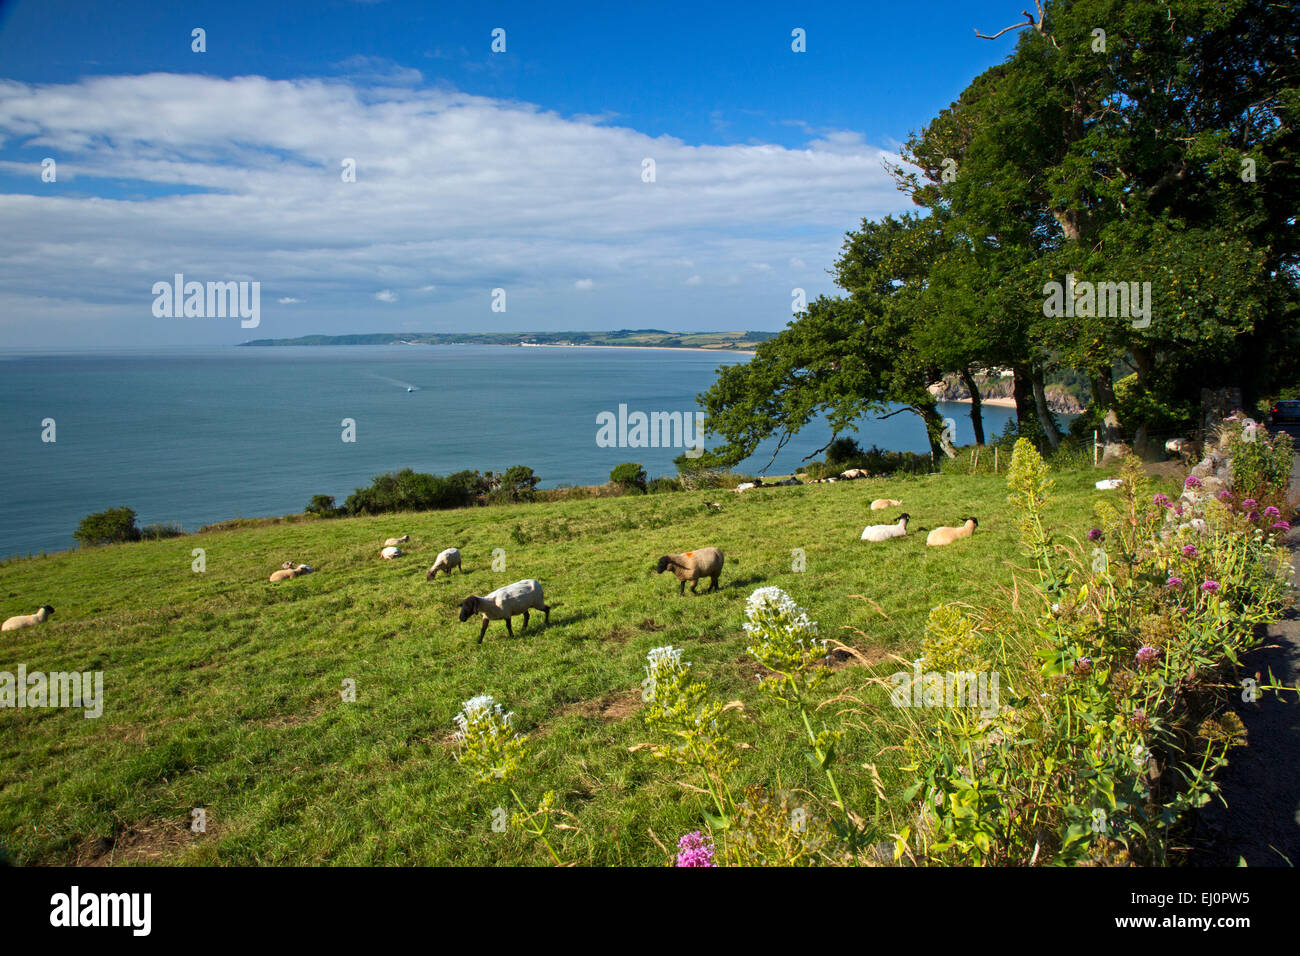 Start bay, Blackpool sands, south, Devon, South-West England, Britain, UK, Europe, British, English channel, south - Stock Image